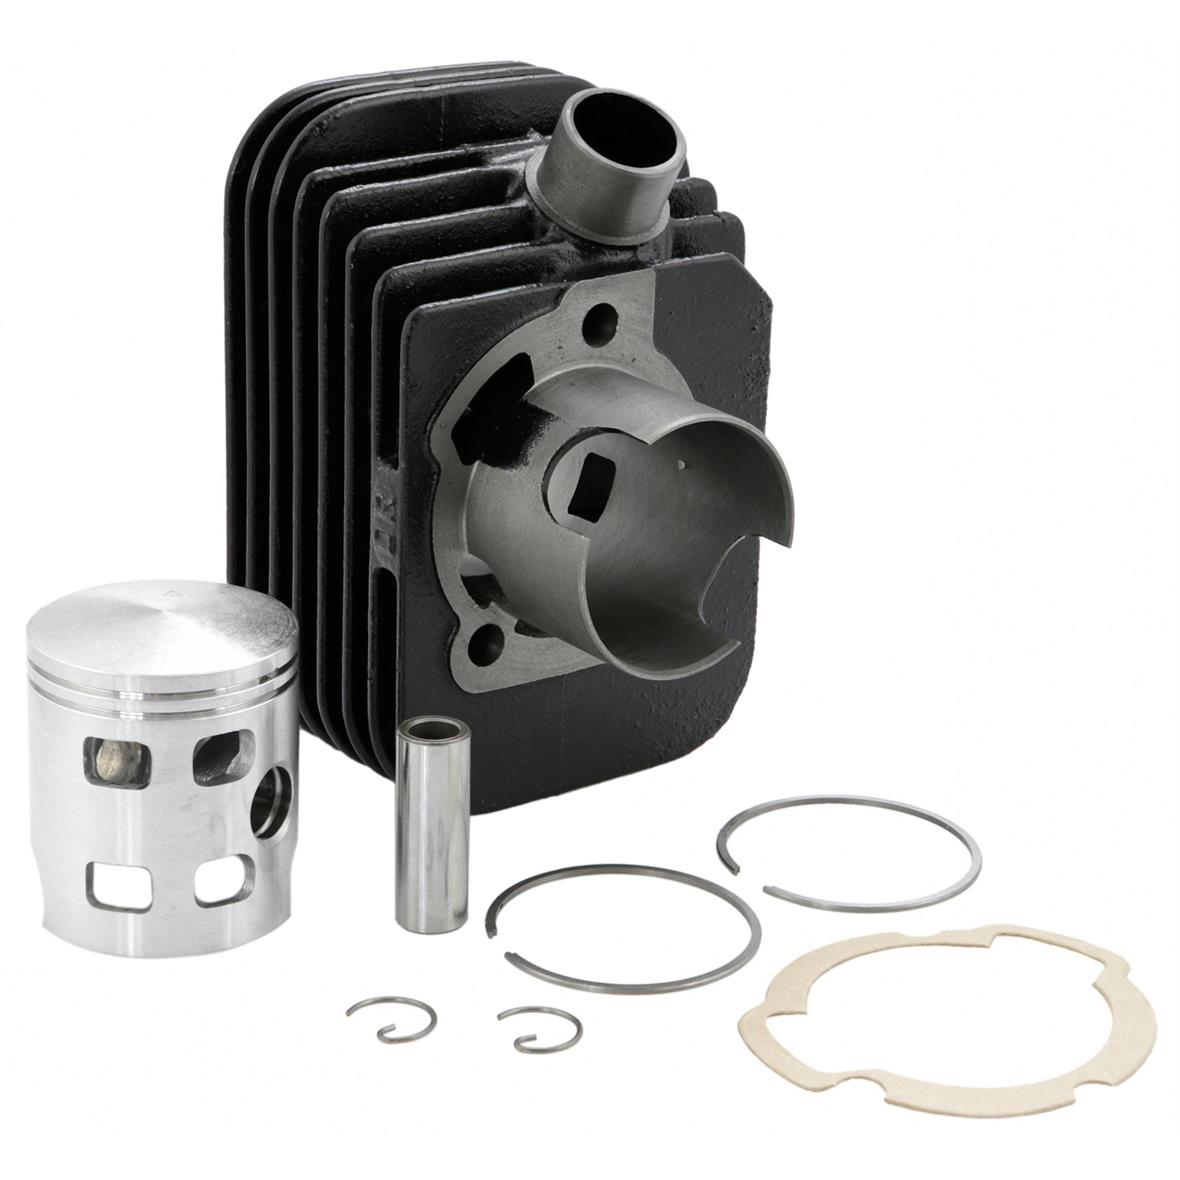 Product Image for 'Racing Cylinder Kit D.R. 50 ccTitle'